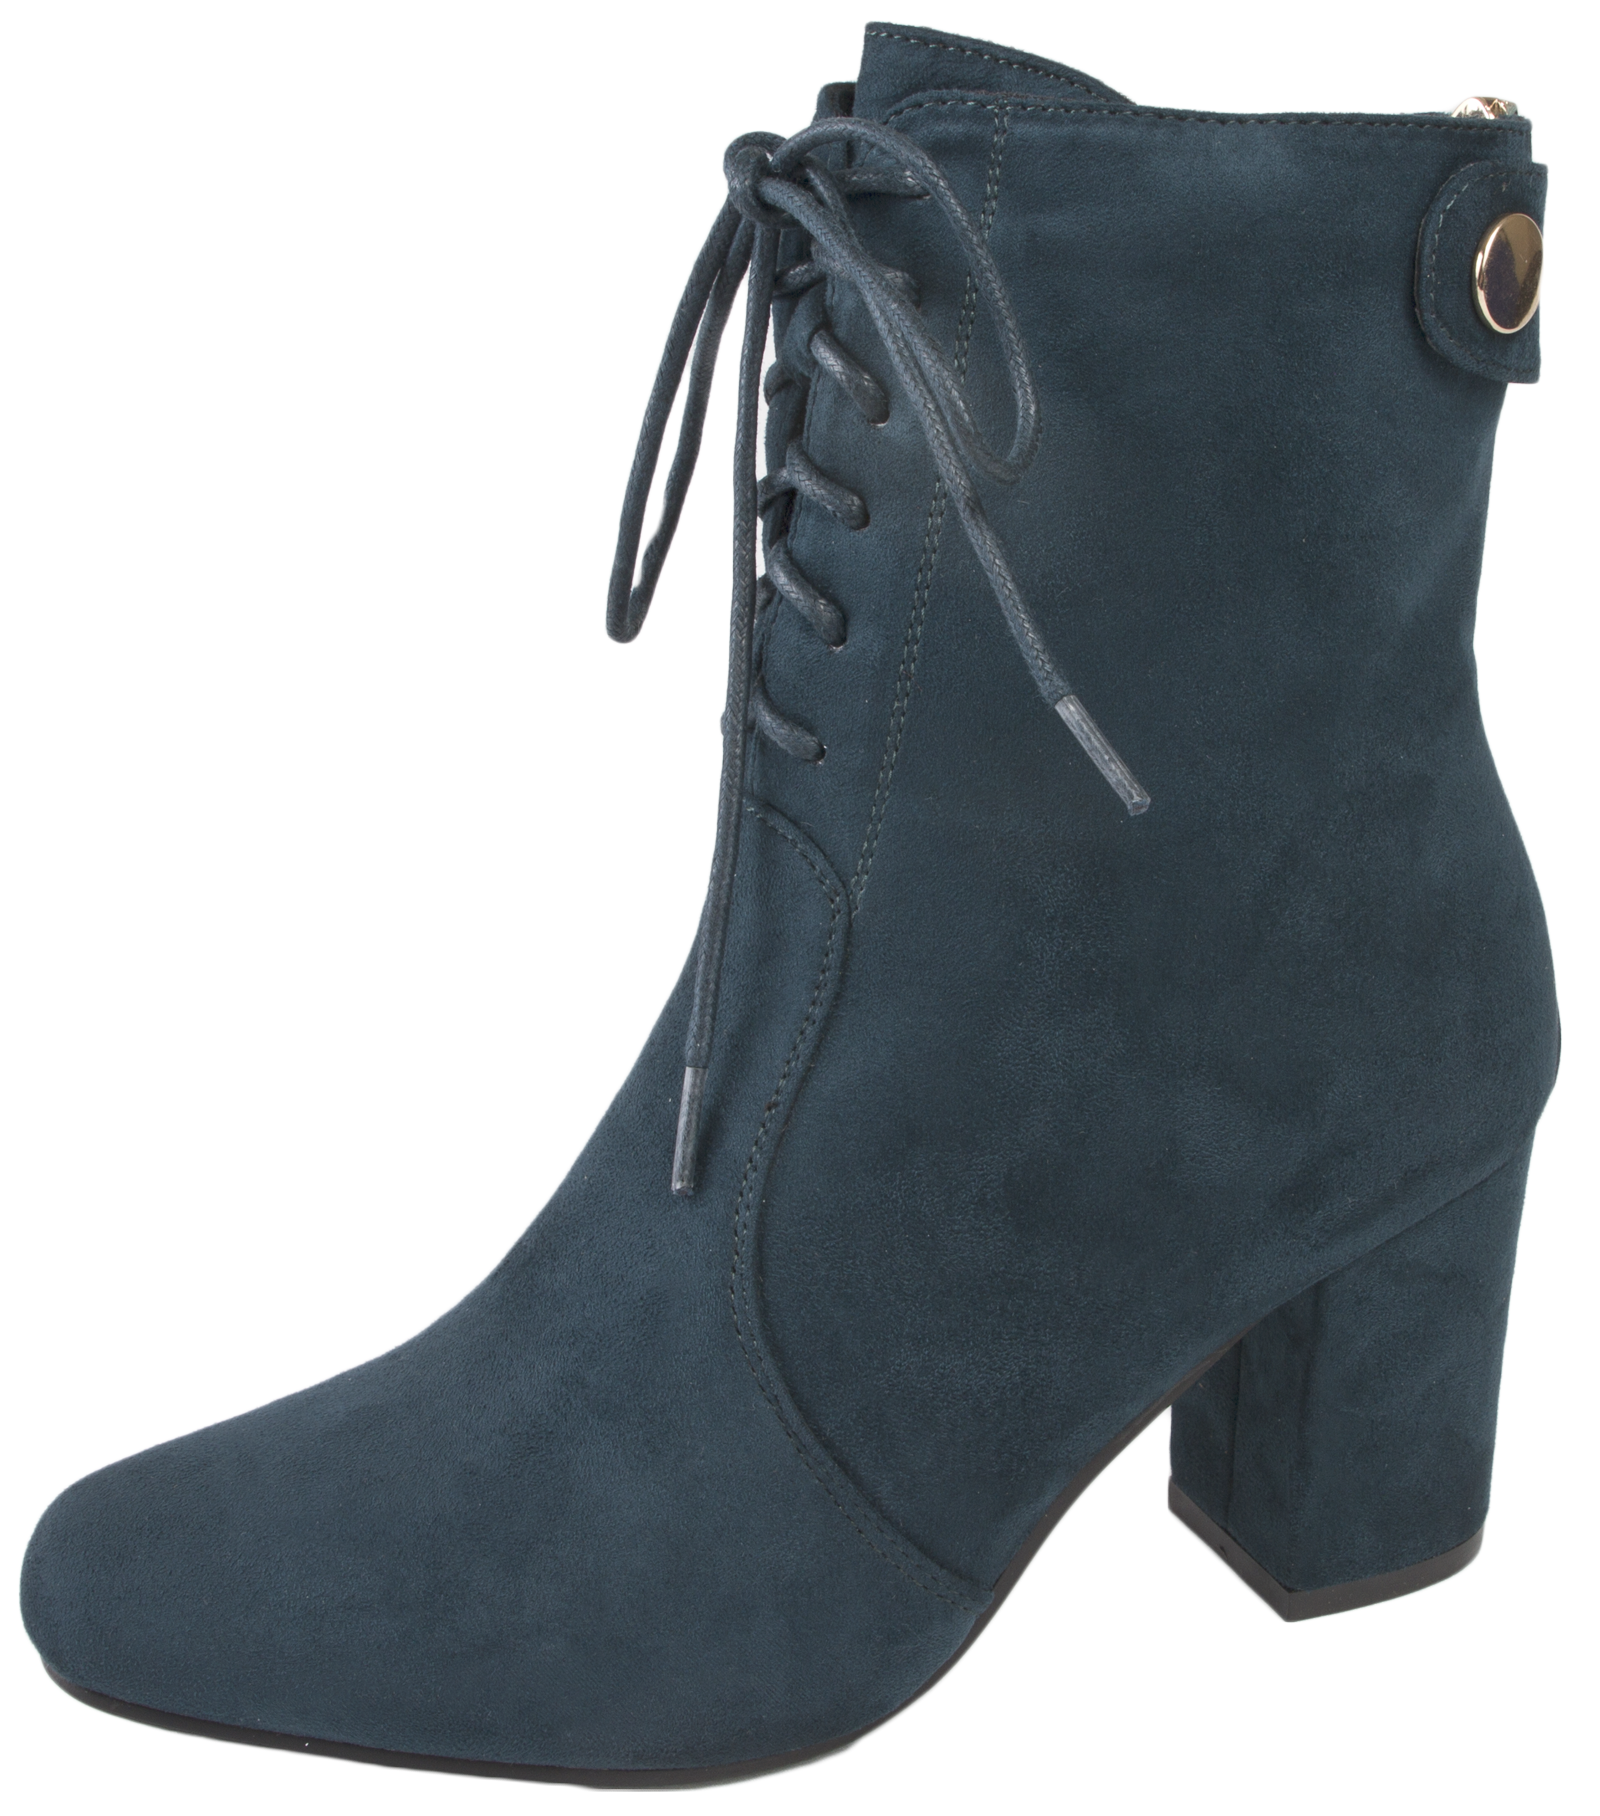 Wonderful Womens Chunky Block Heel Chelsea Ankle Boots Faux Suede Shoes Girls Size UK 4-8 | EBay